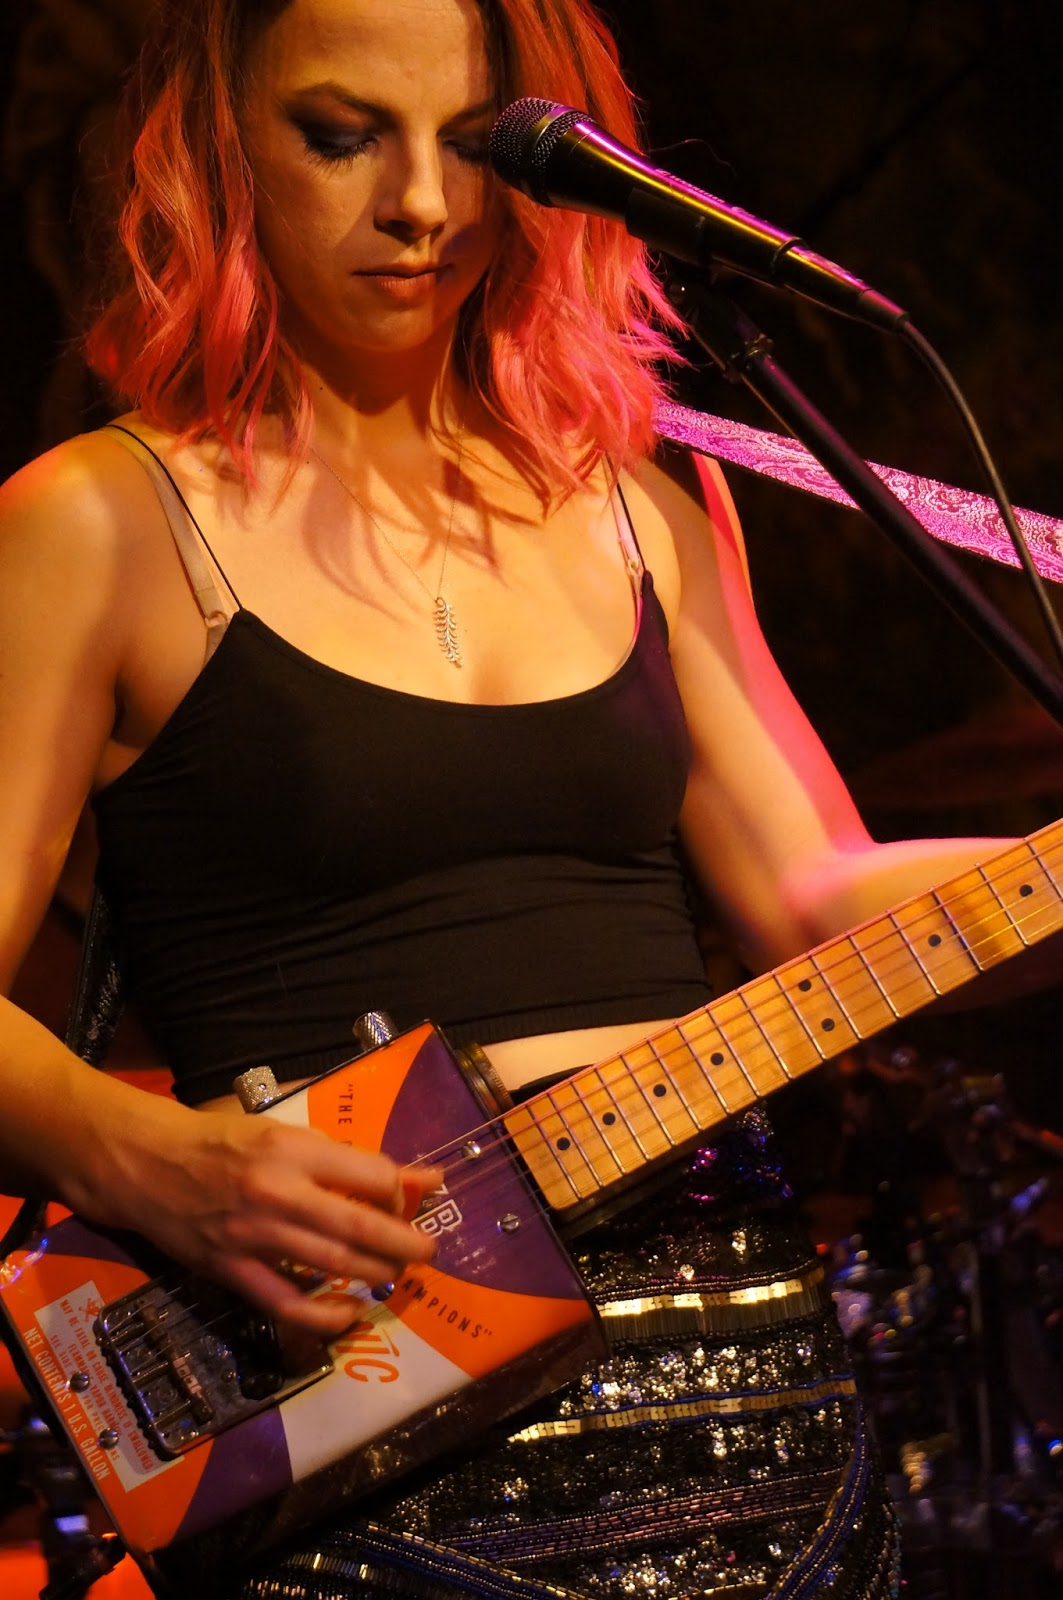 PhillyCheeze's Rock & Blues Reviews: Samantha Fish - Live @ Campbell Steele Gallery : 3/18/16